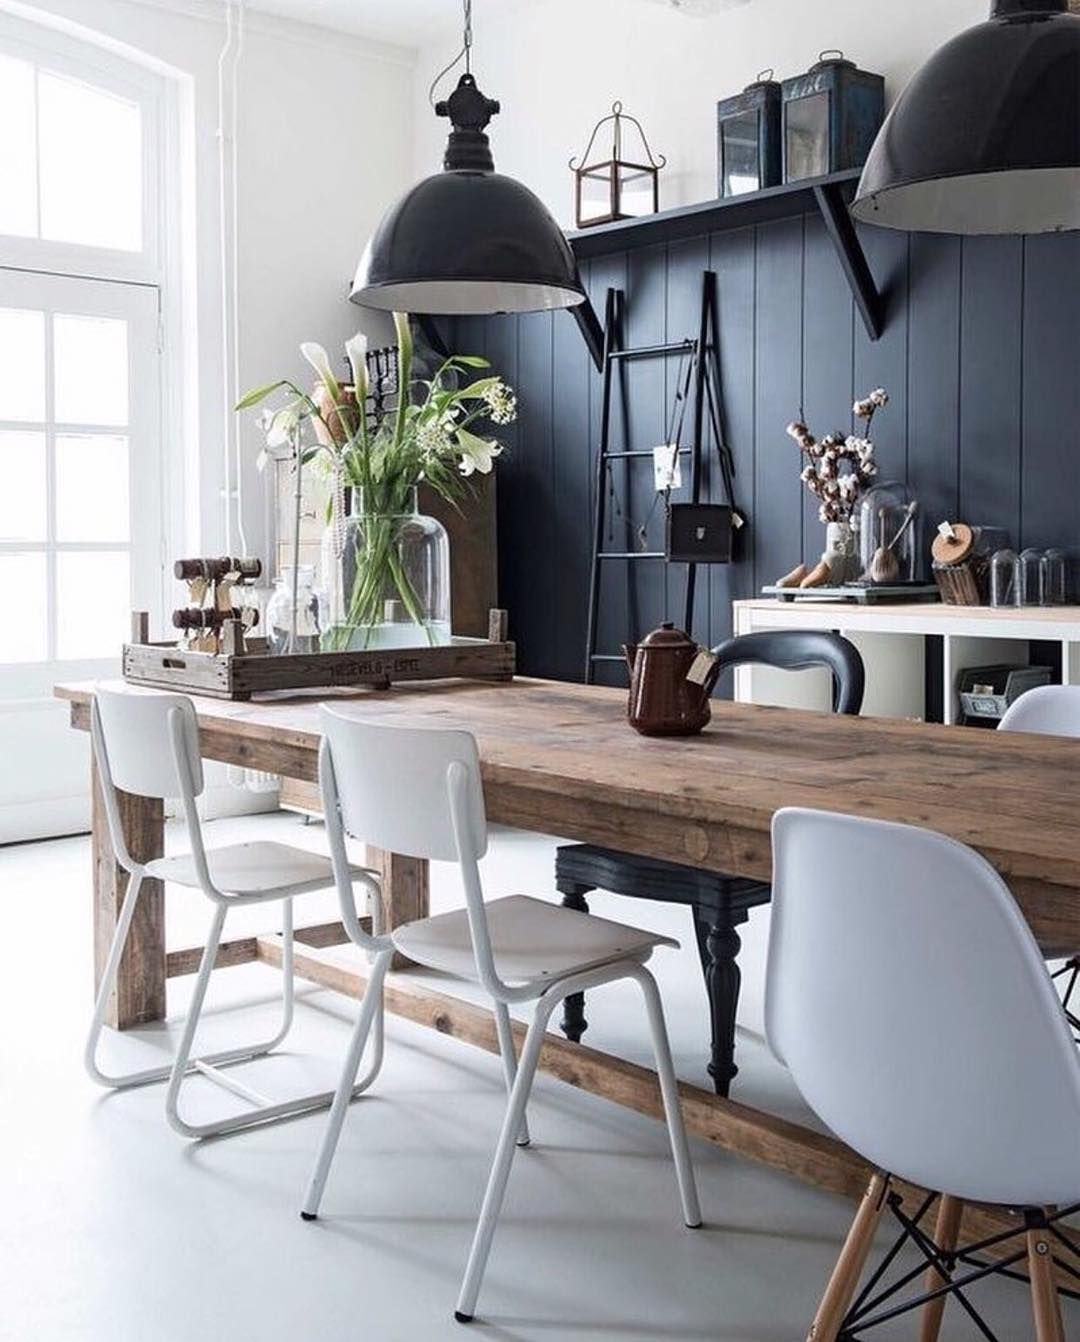 Rustic Modern Kitchen Table: Tall Black Wainscoting On Breakfast Nook Wall With Teal